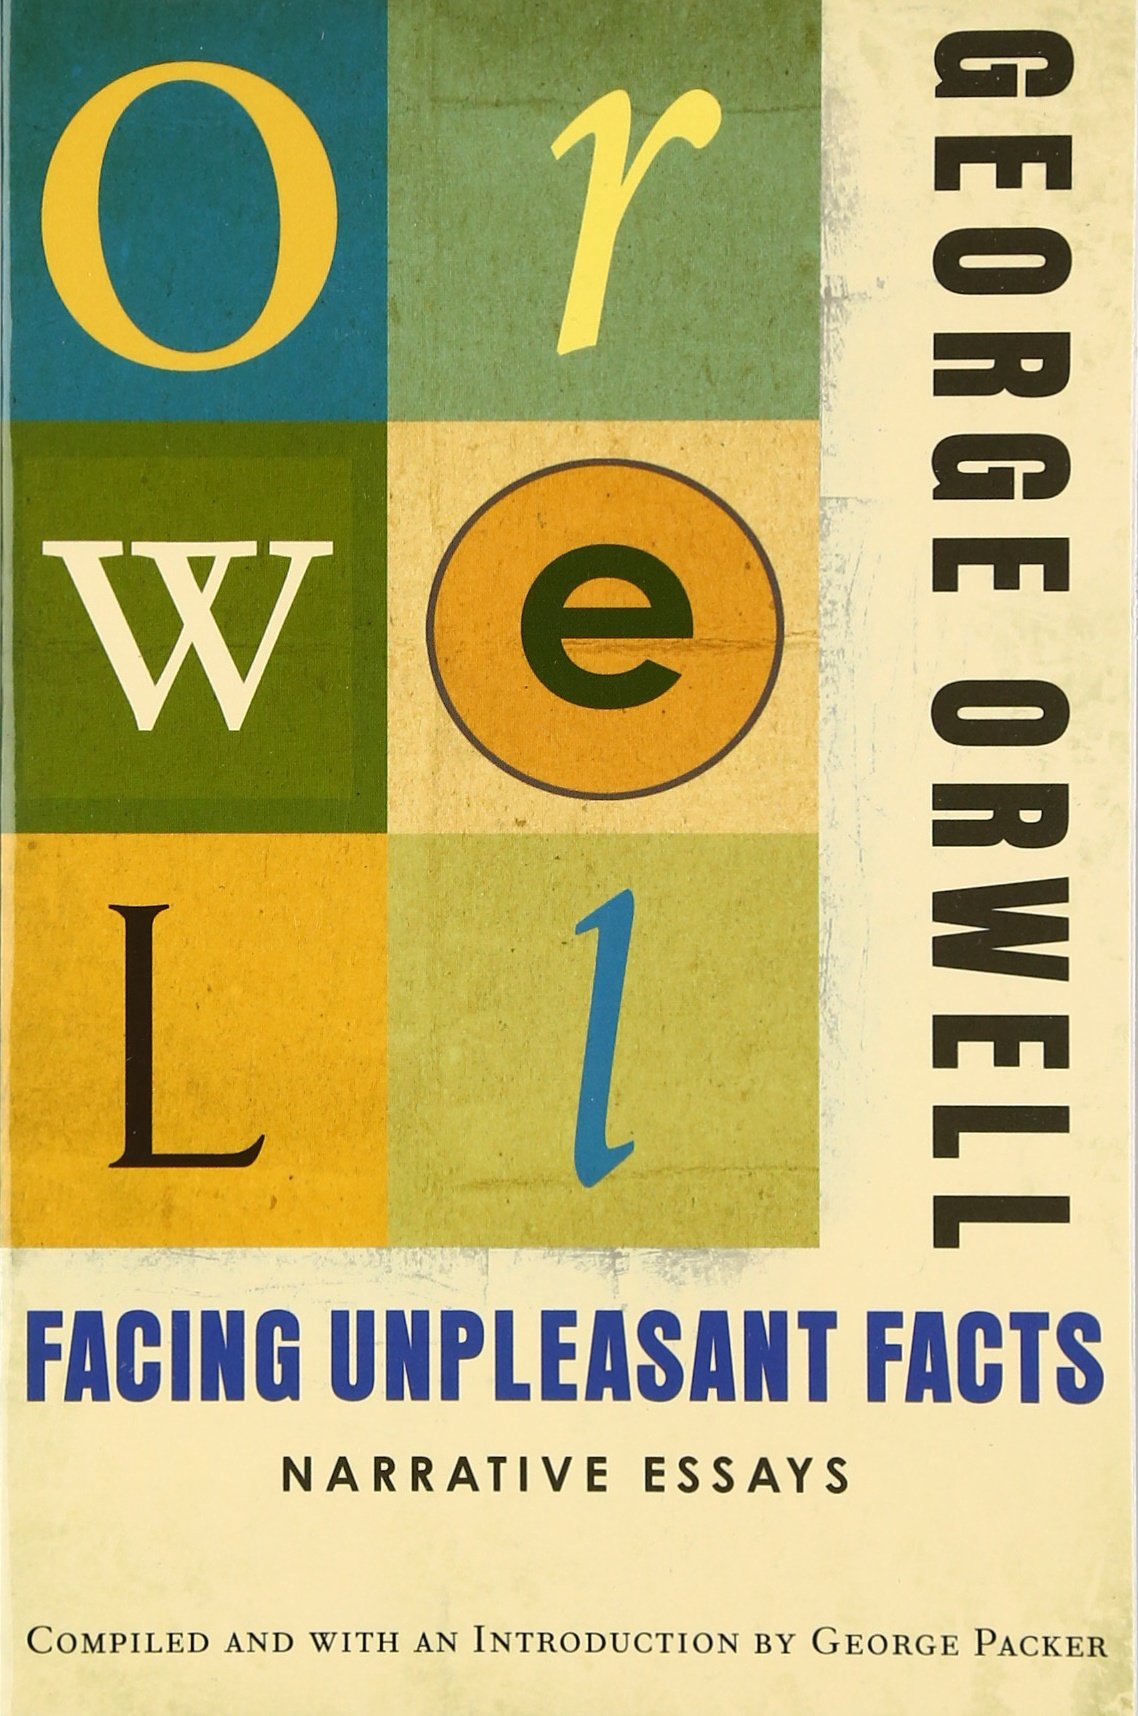 facing unpleasant facts narrative essays george orwell george facing unpleasant facts narrative essays george orwell george packer 9780156033138 english literature amazon